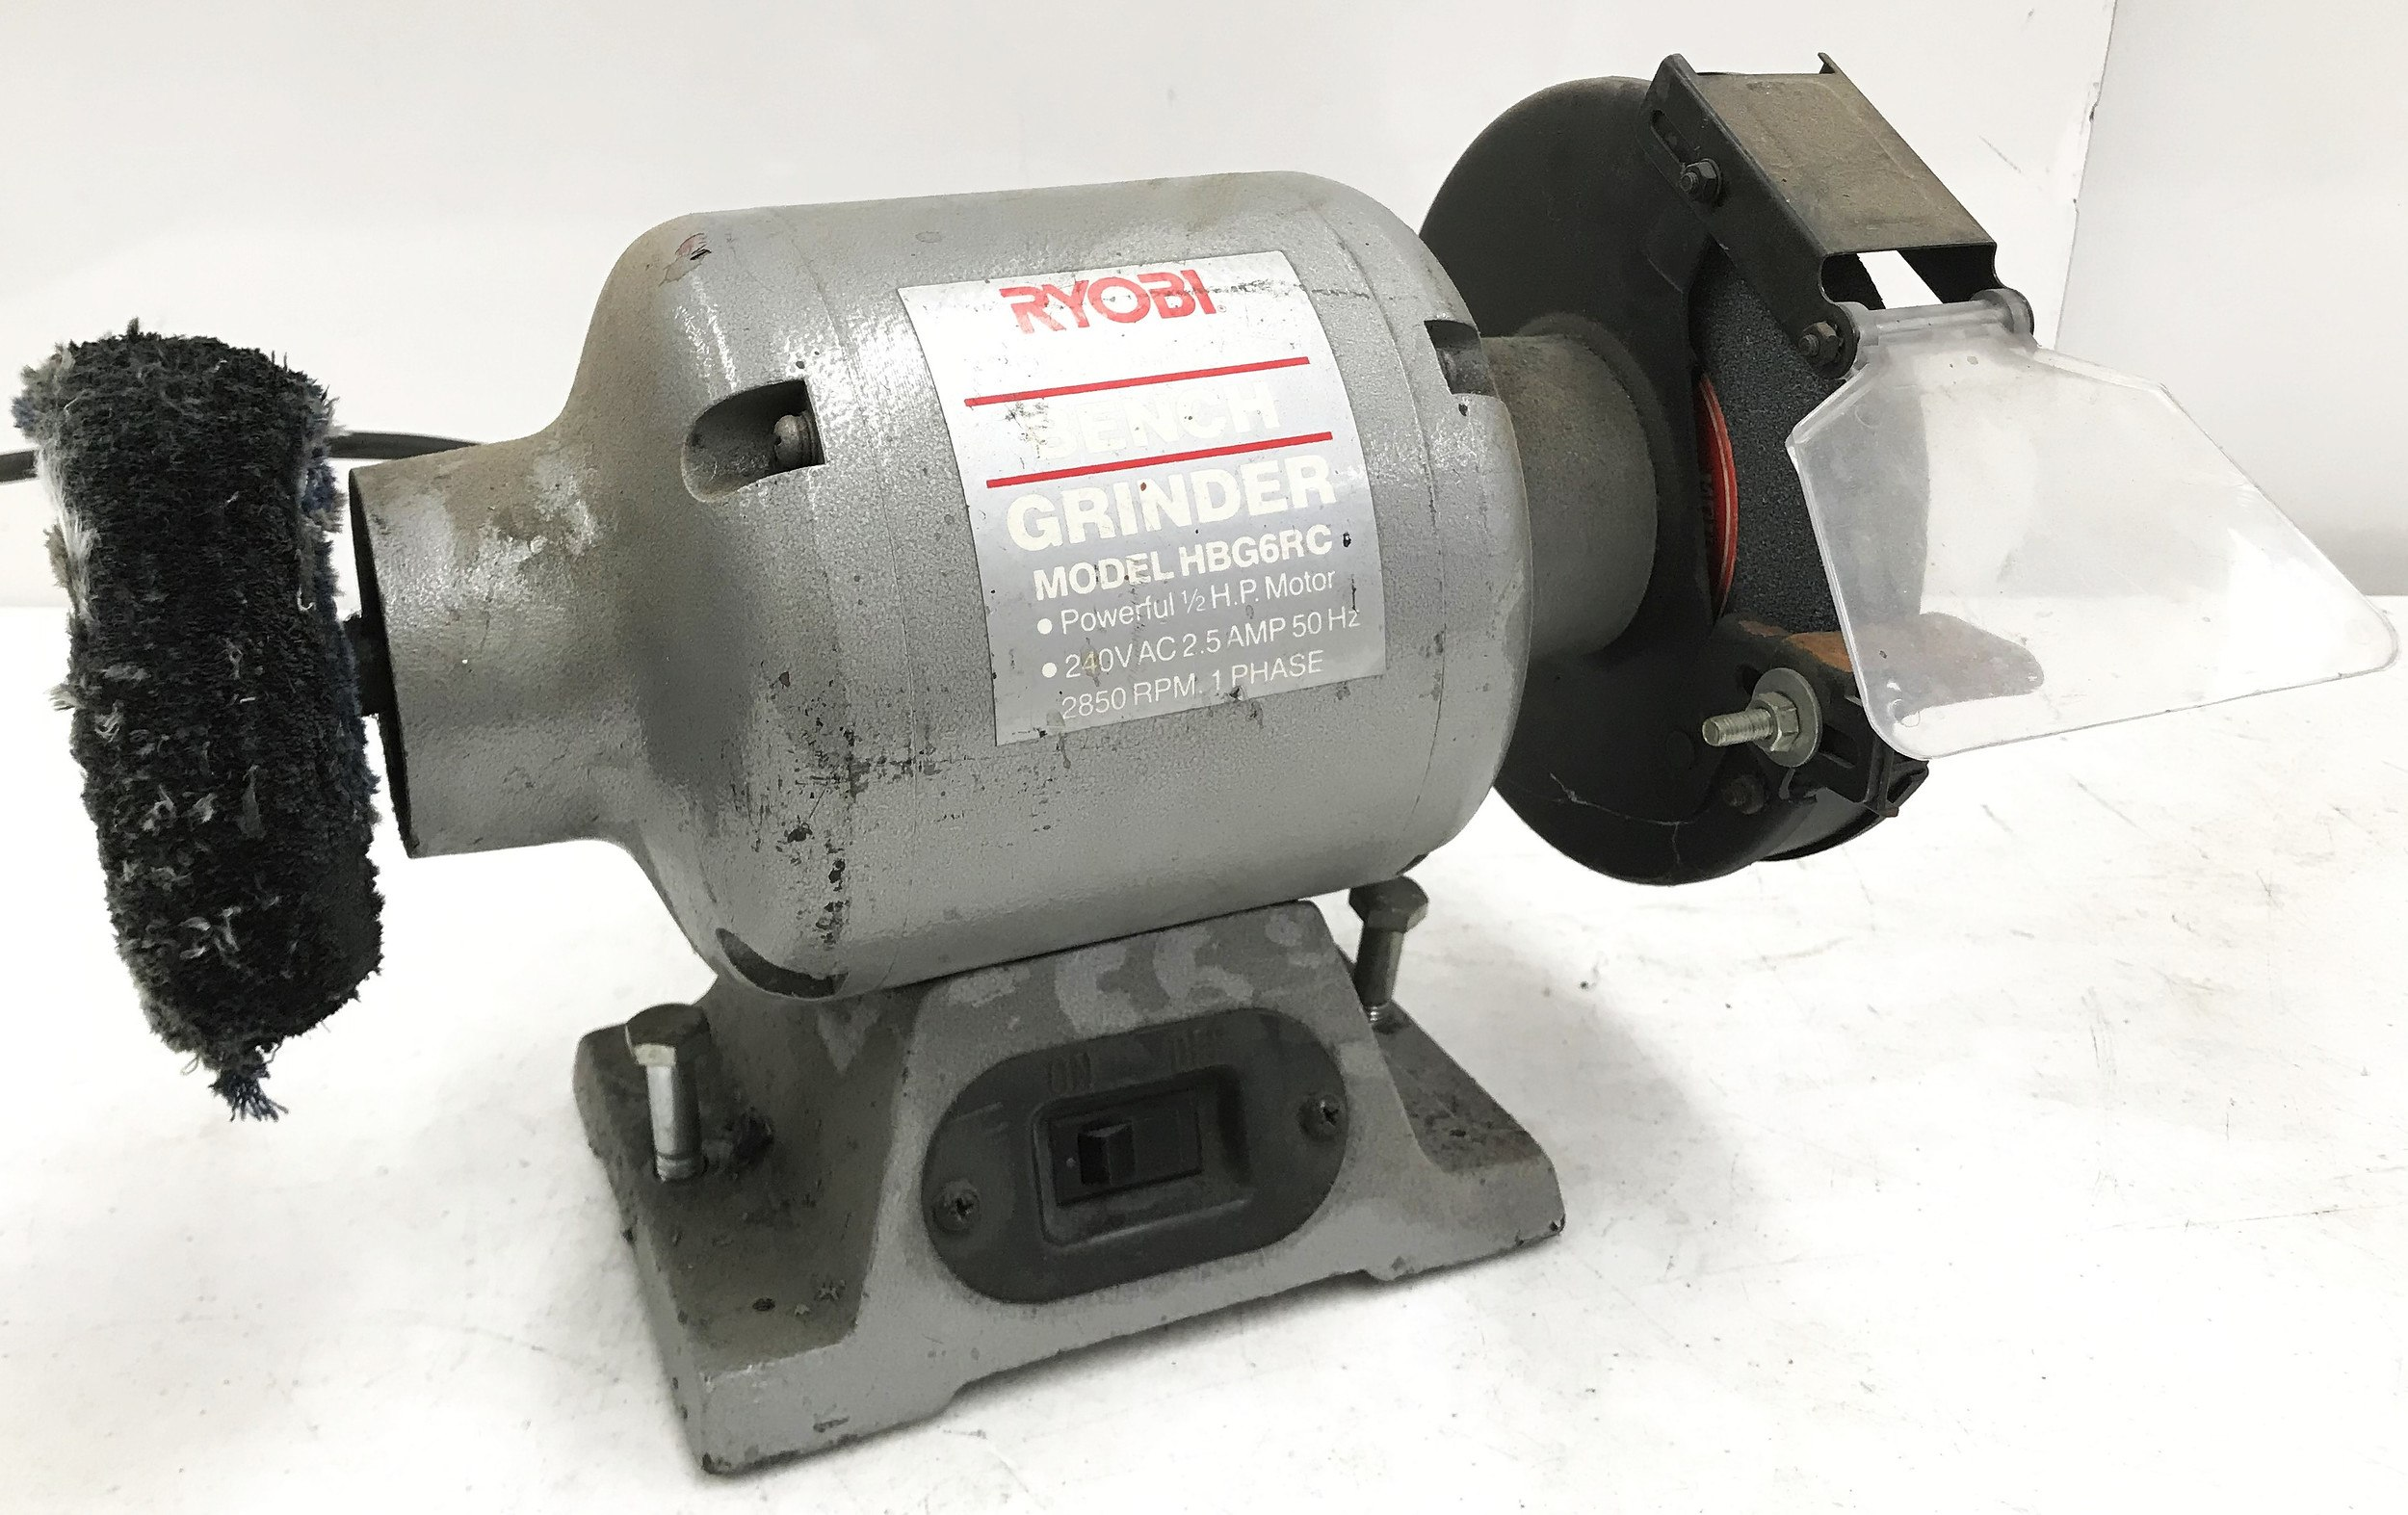 Fine Ryobi Hbg6Rc 150Mm Bench Grinder Caraccident5 Cool Chair Designs And Ideas Caraccident5Info